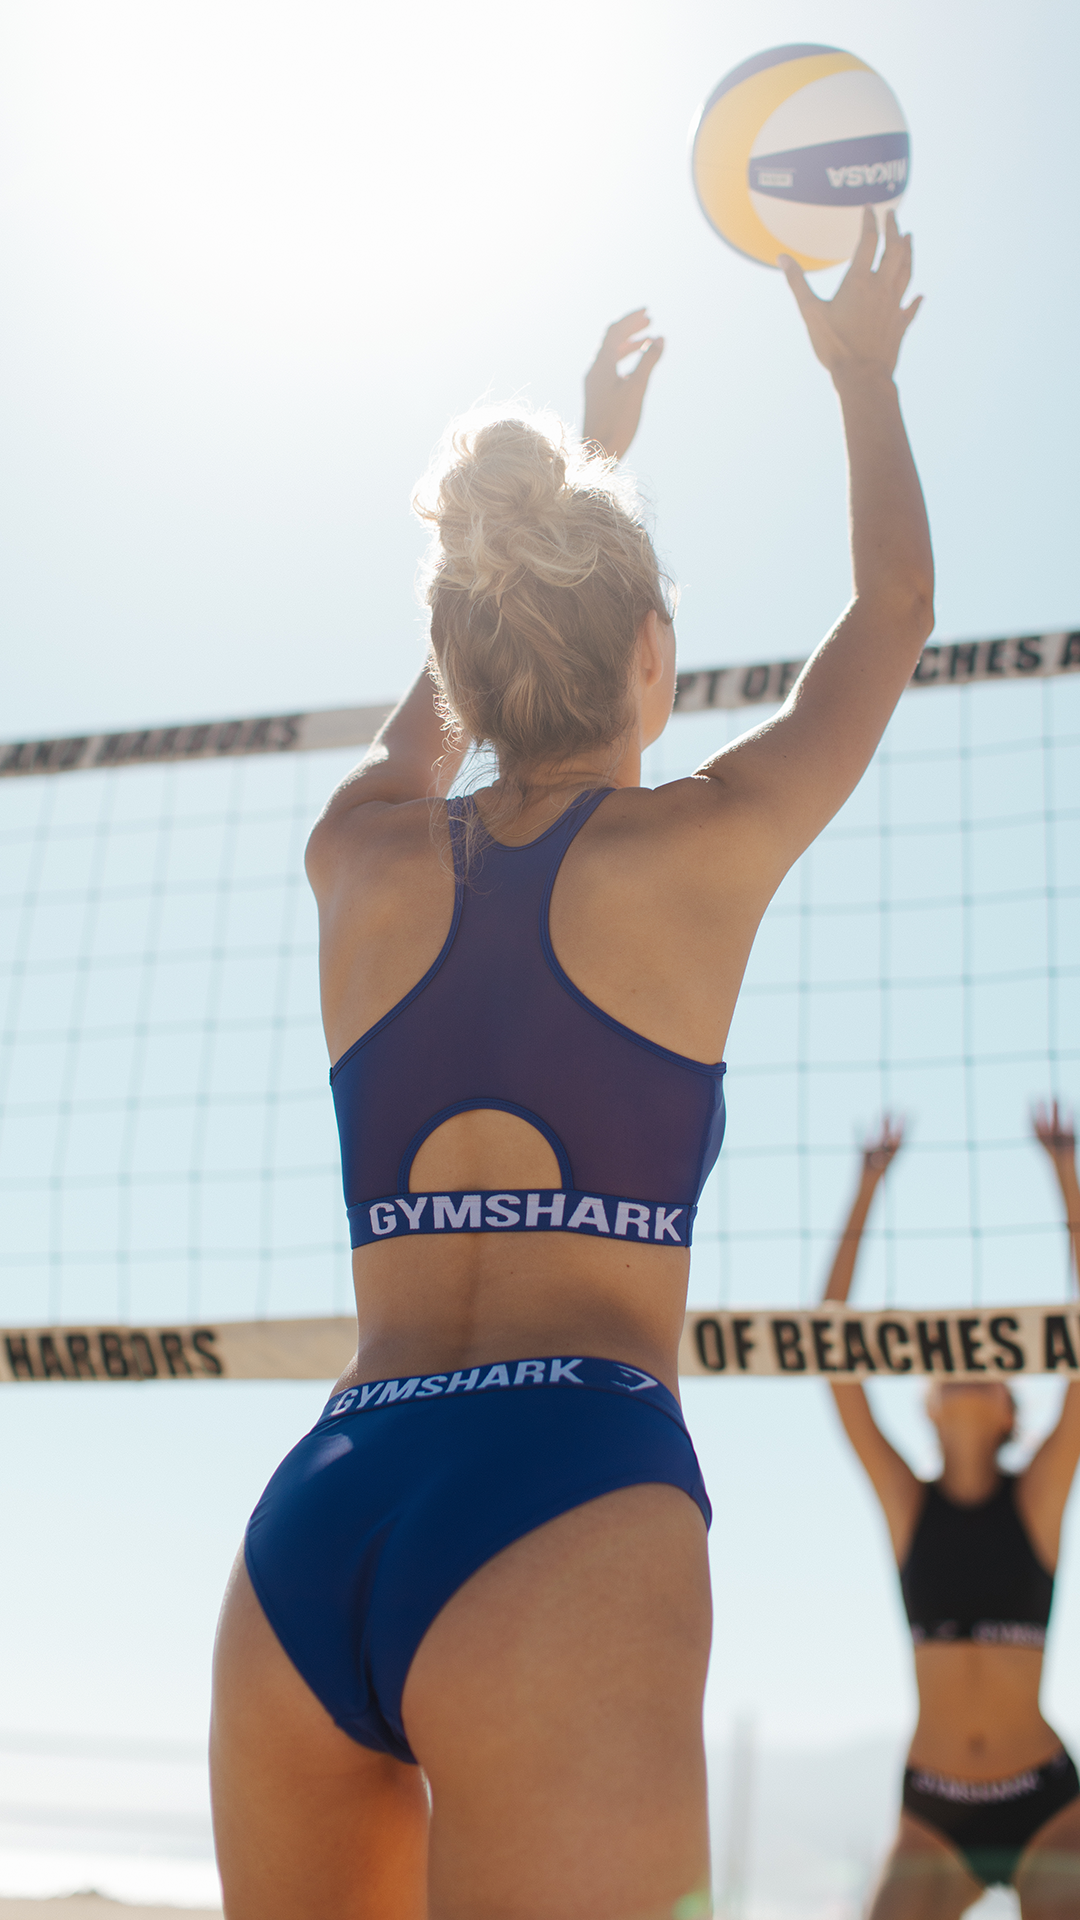 Stay Supported At Your Summer Workout Sessions Wearing The Gymshark Workout Bikini Gymshark Bikini Summer Style In 2020 Bikinis Bikini Workout Athletic Bikinis